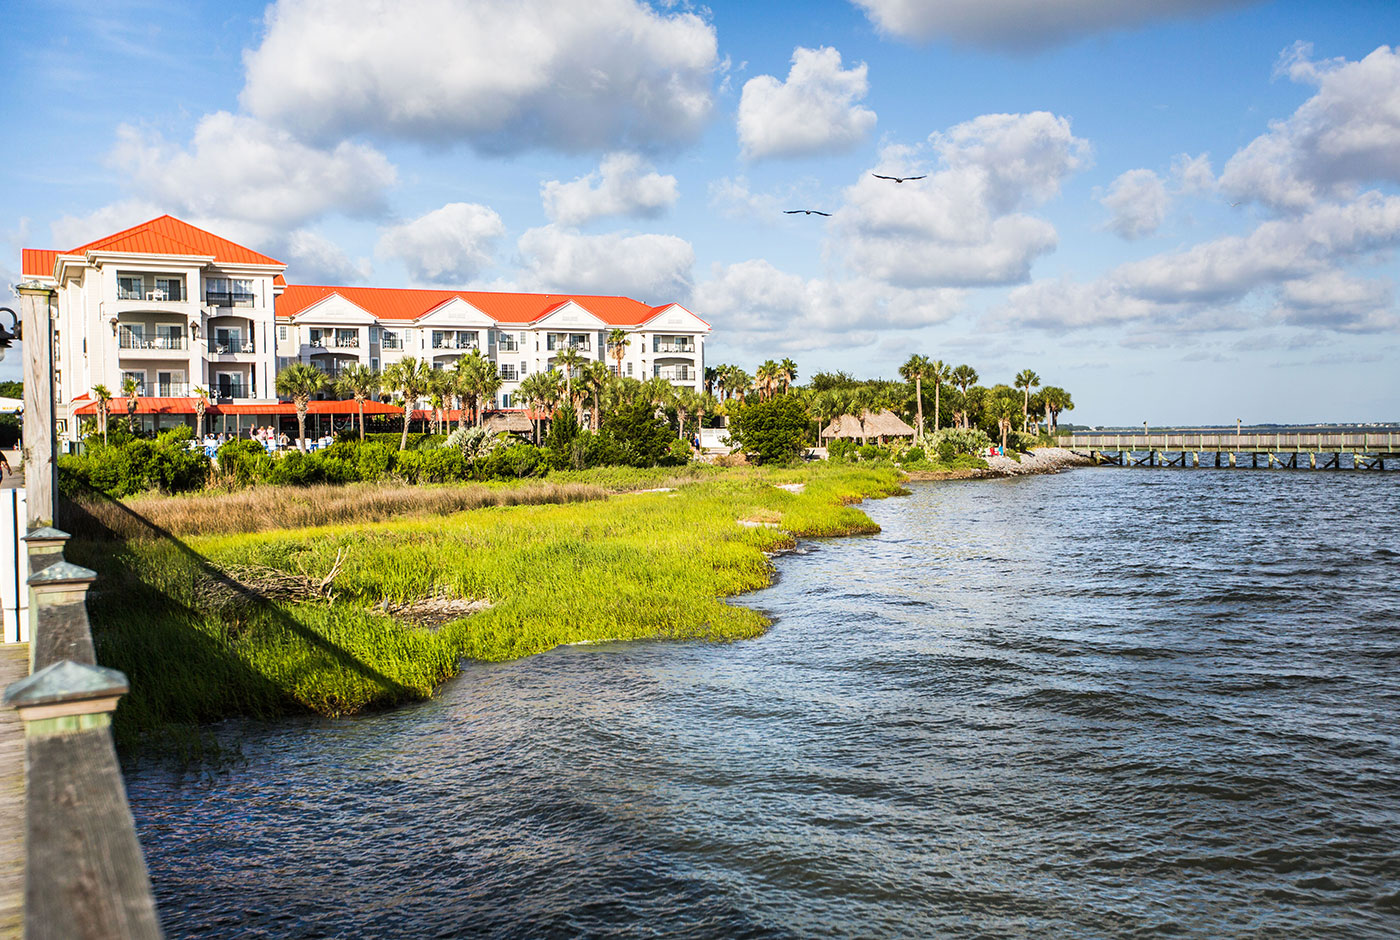 Harborside Resort Waterfront Hotel in Charleston